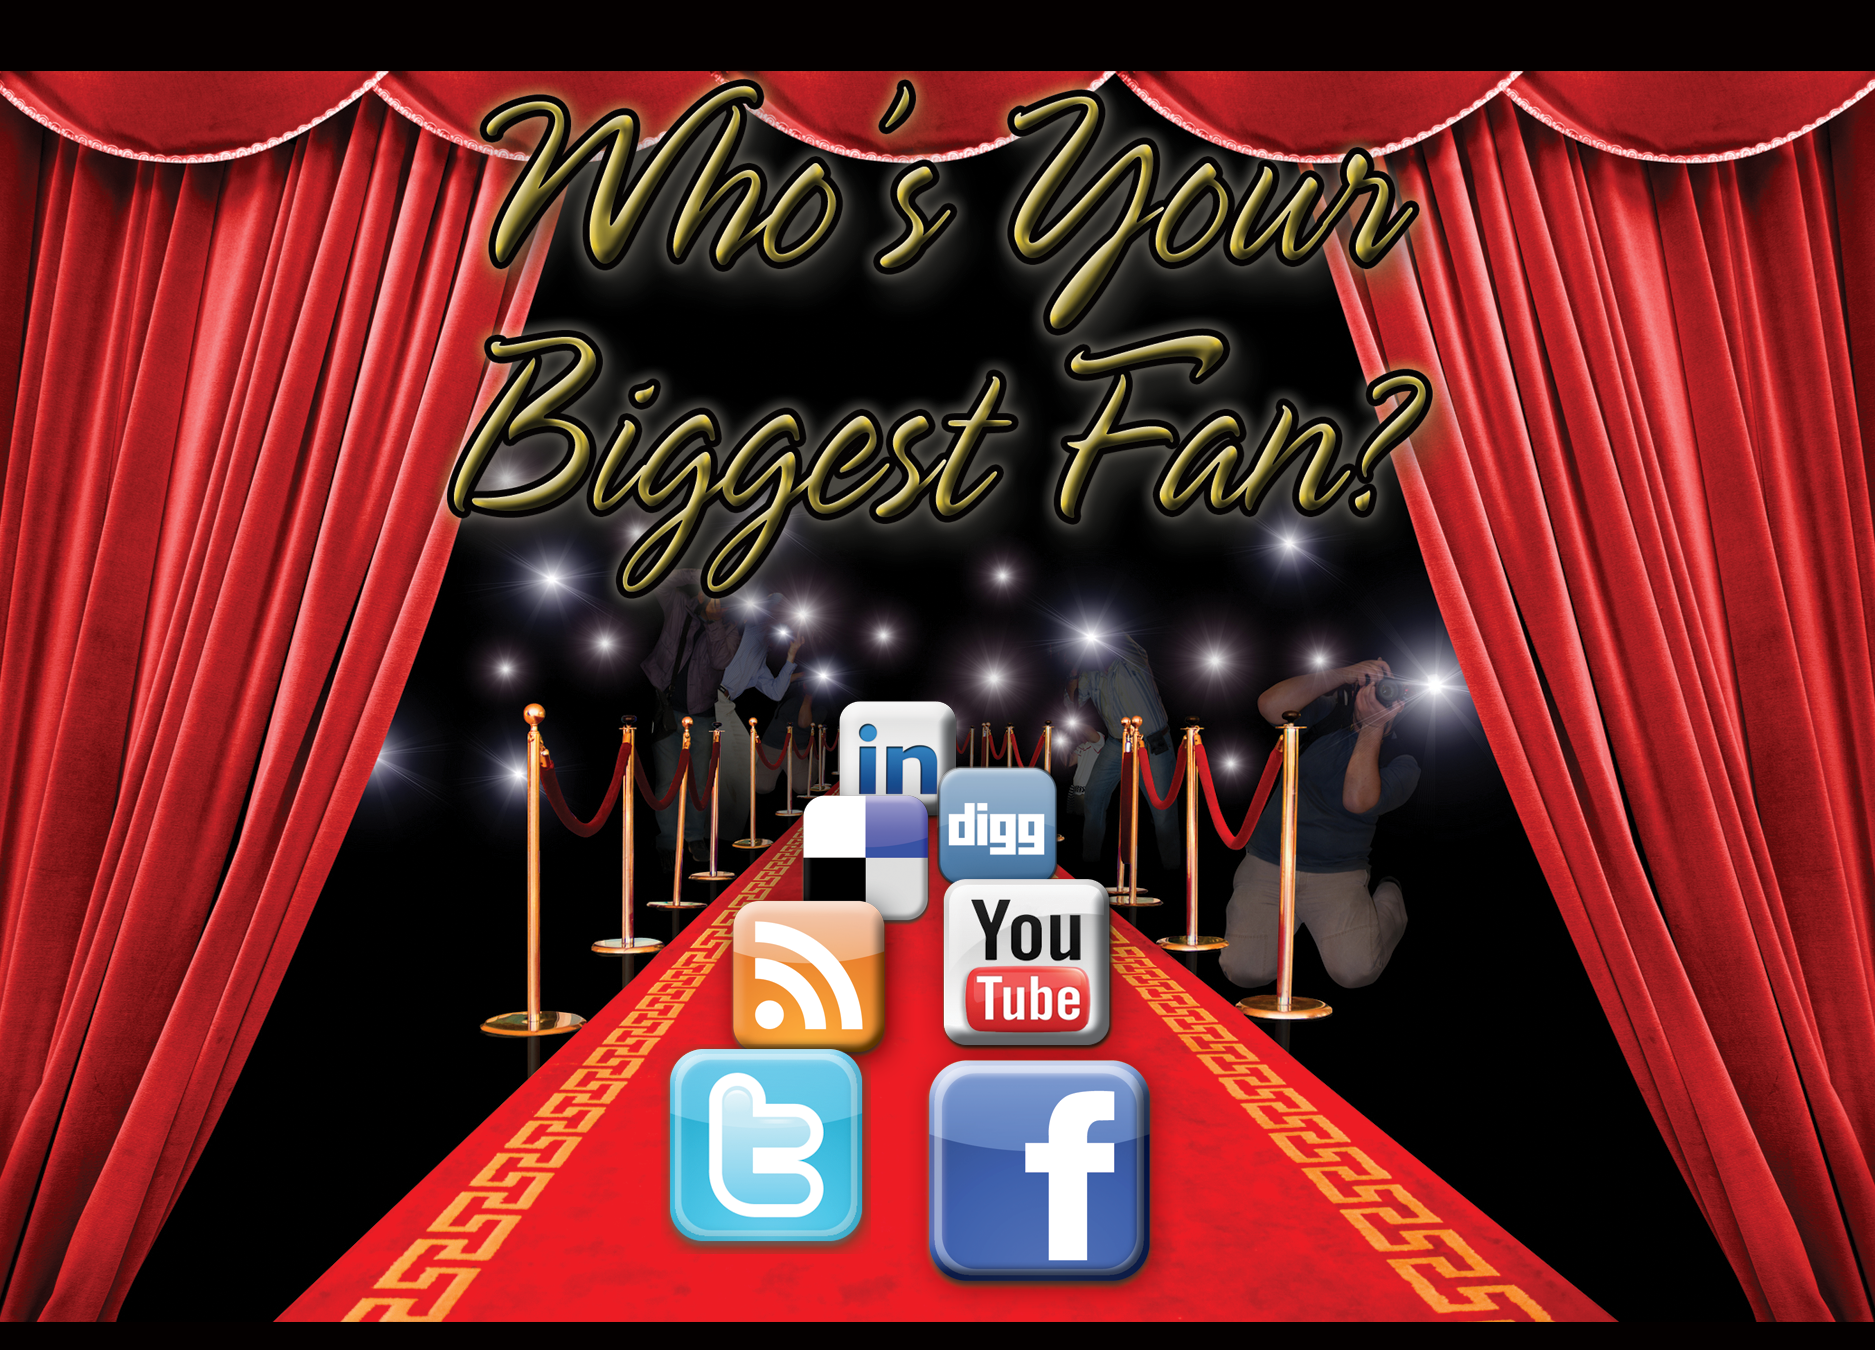 Who's Your Biggest Fan?